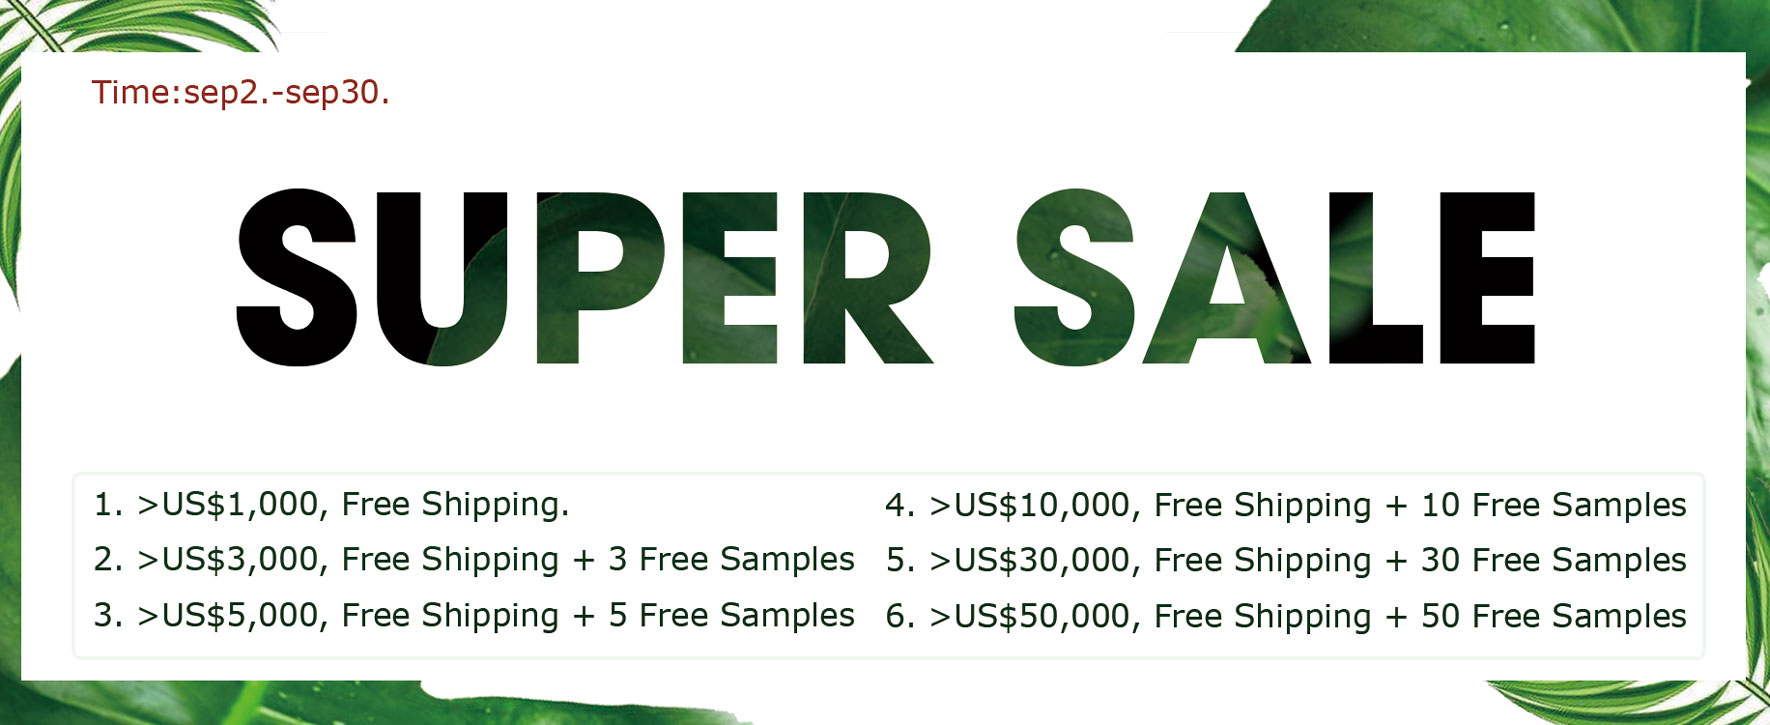 super-sale-on-Sep.